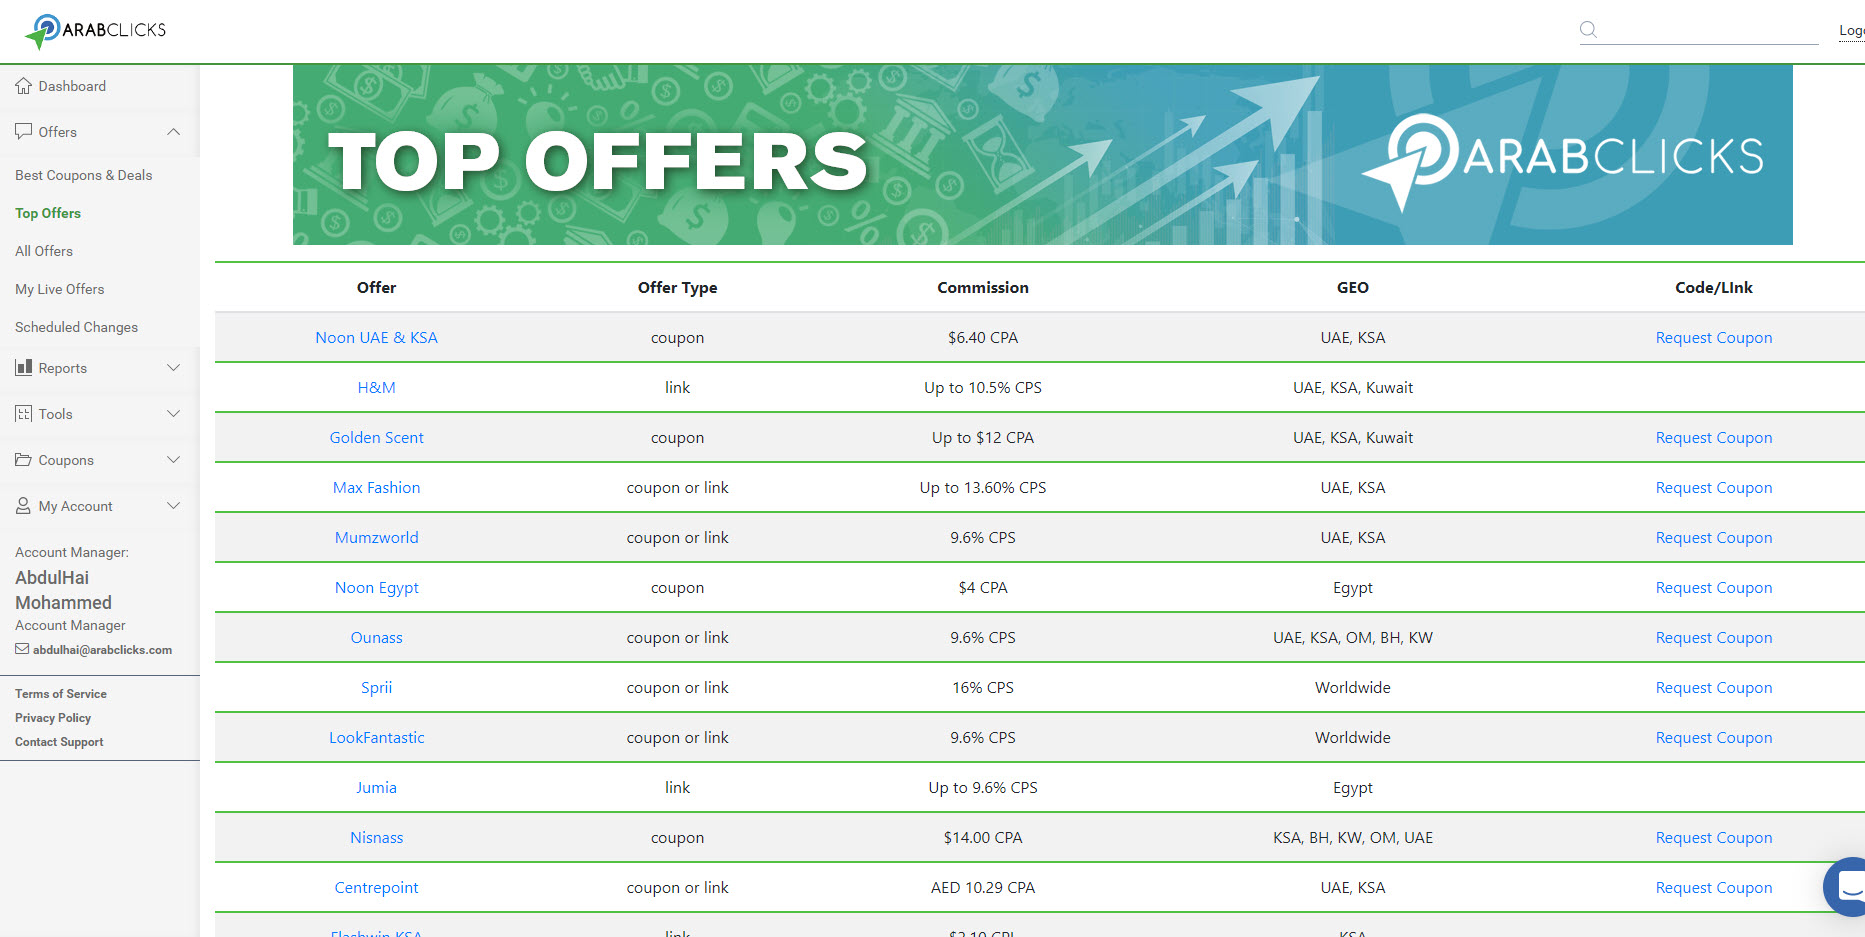 Top Offers1